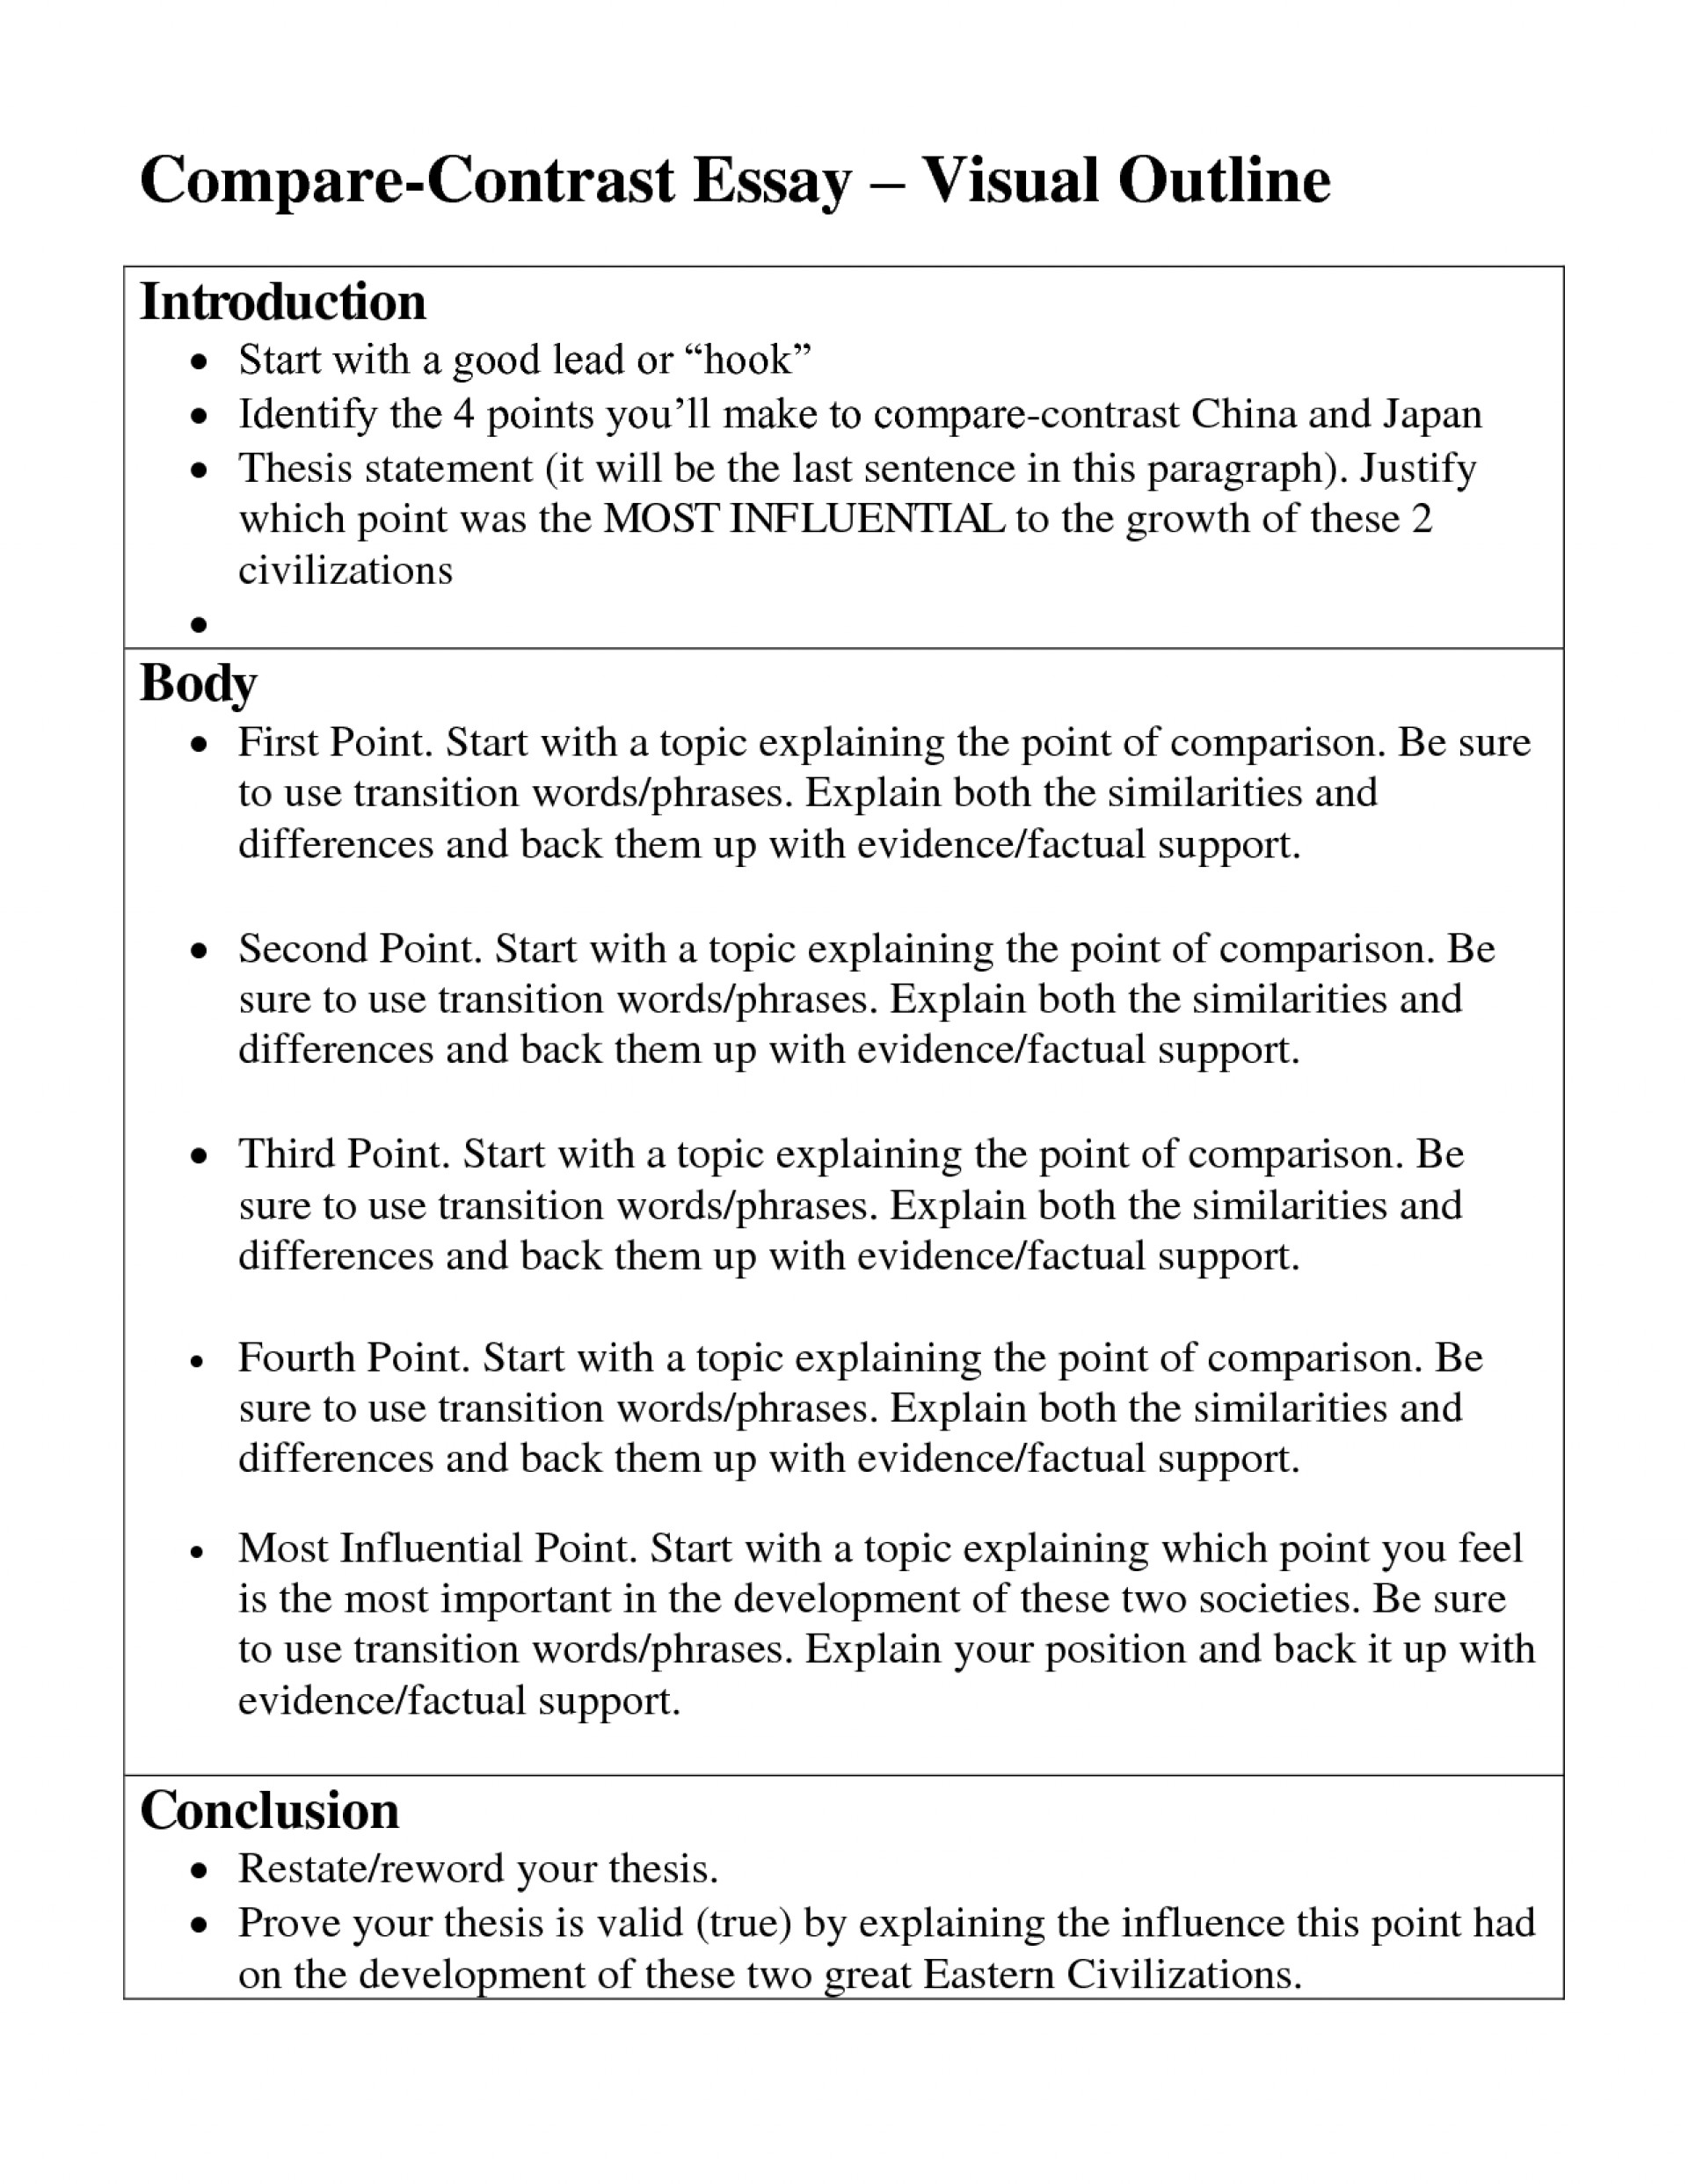 011 What Is Compare And Contrast Essay Zvnu5gm74k Striking A Does Comparison/contrast Look Like Should Provide Good Topic Sentence For 1920